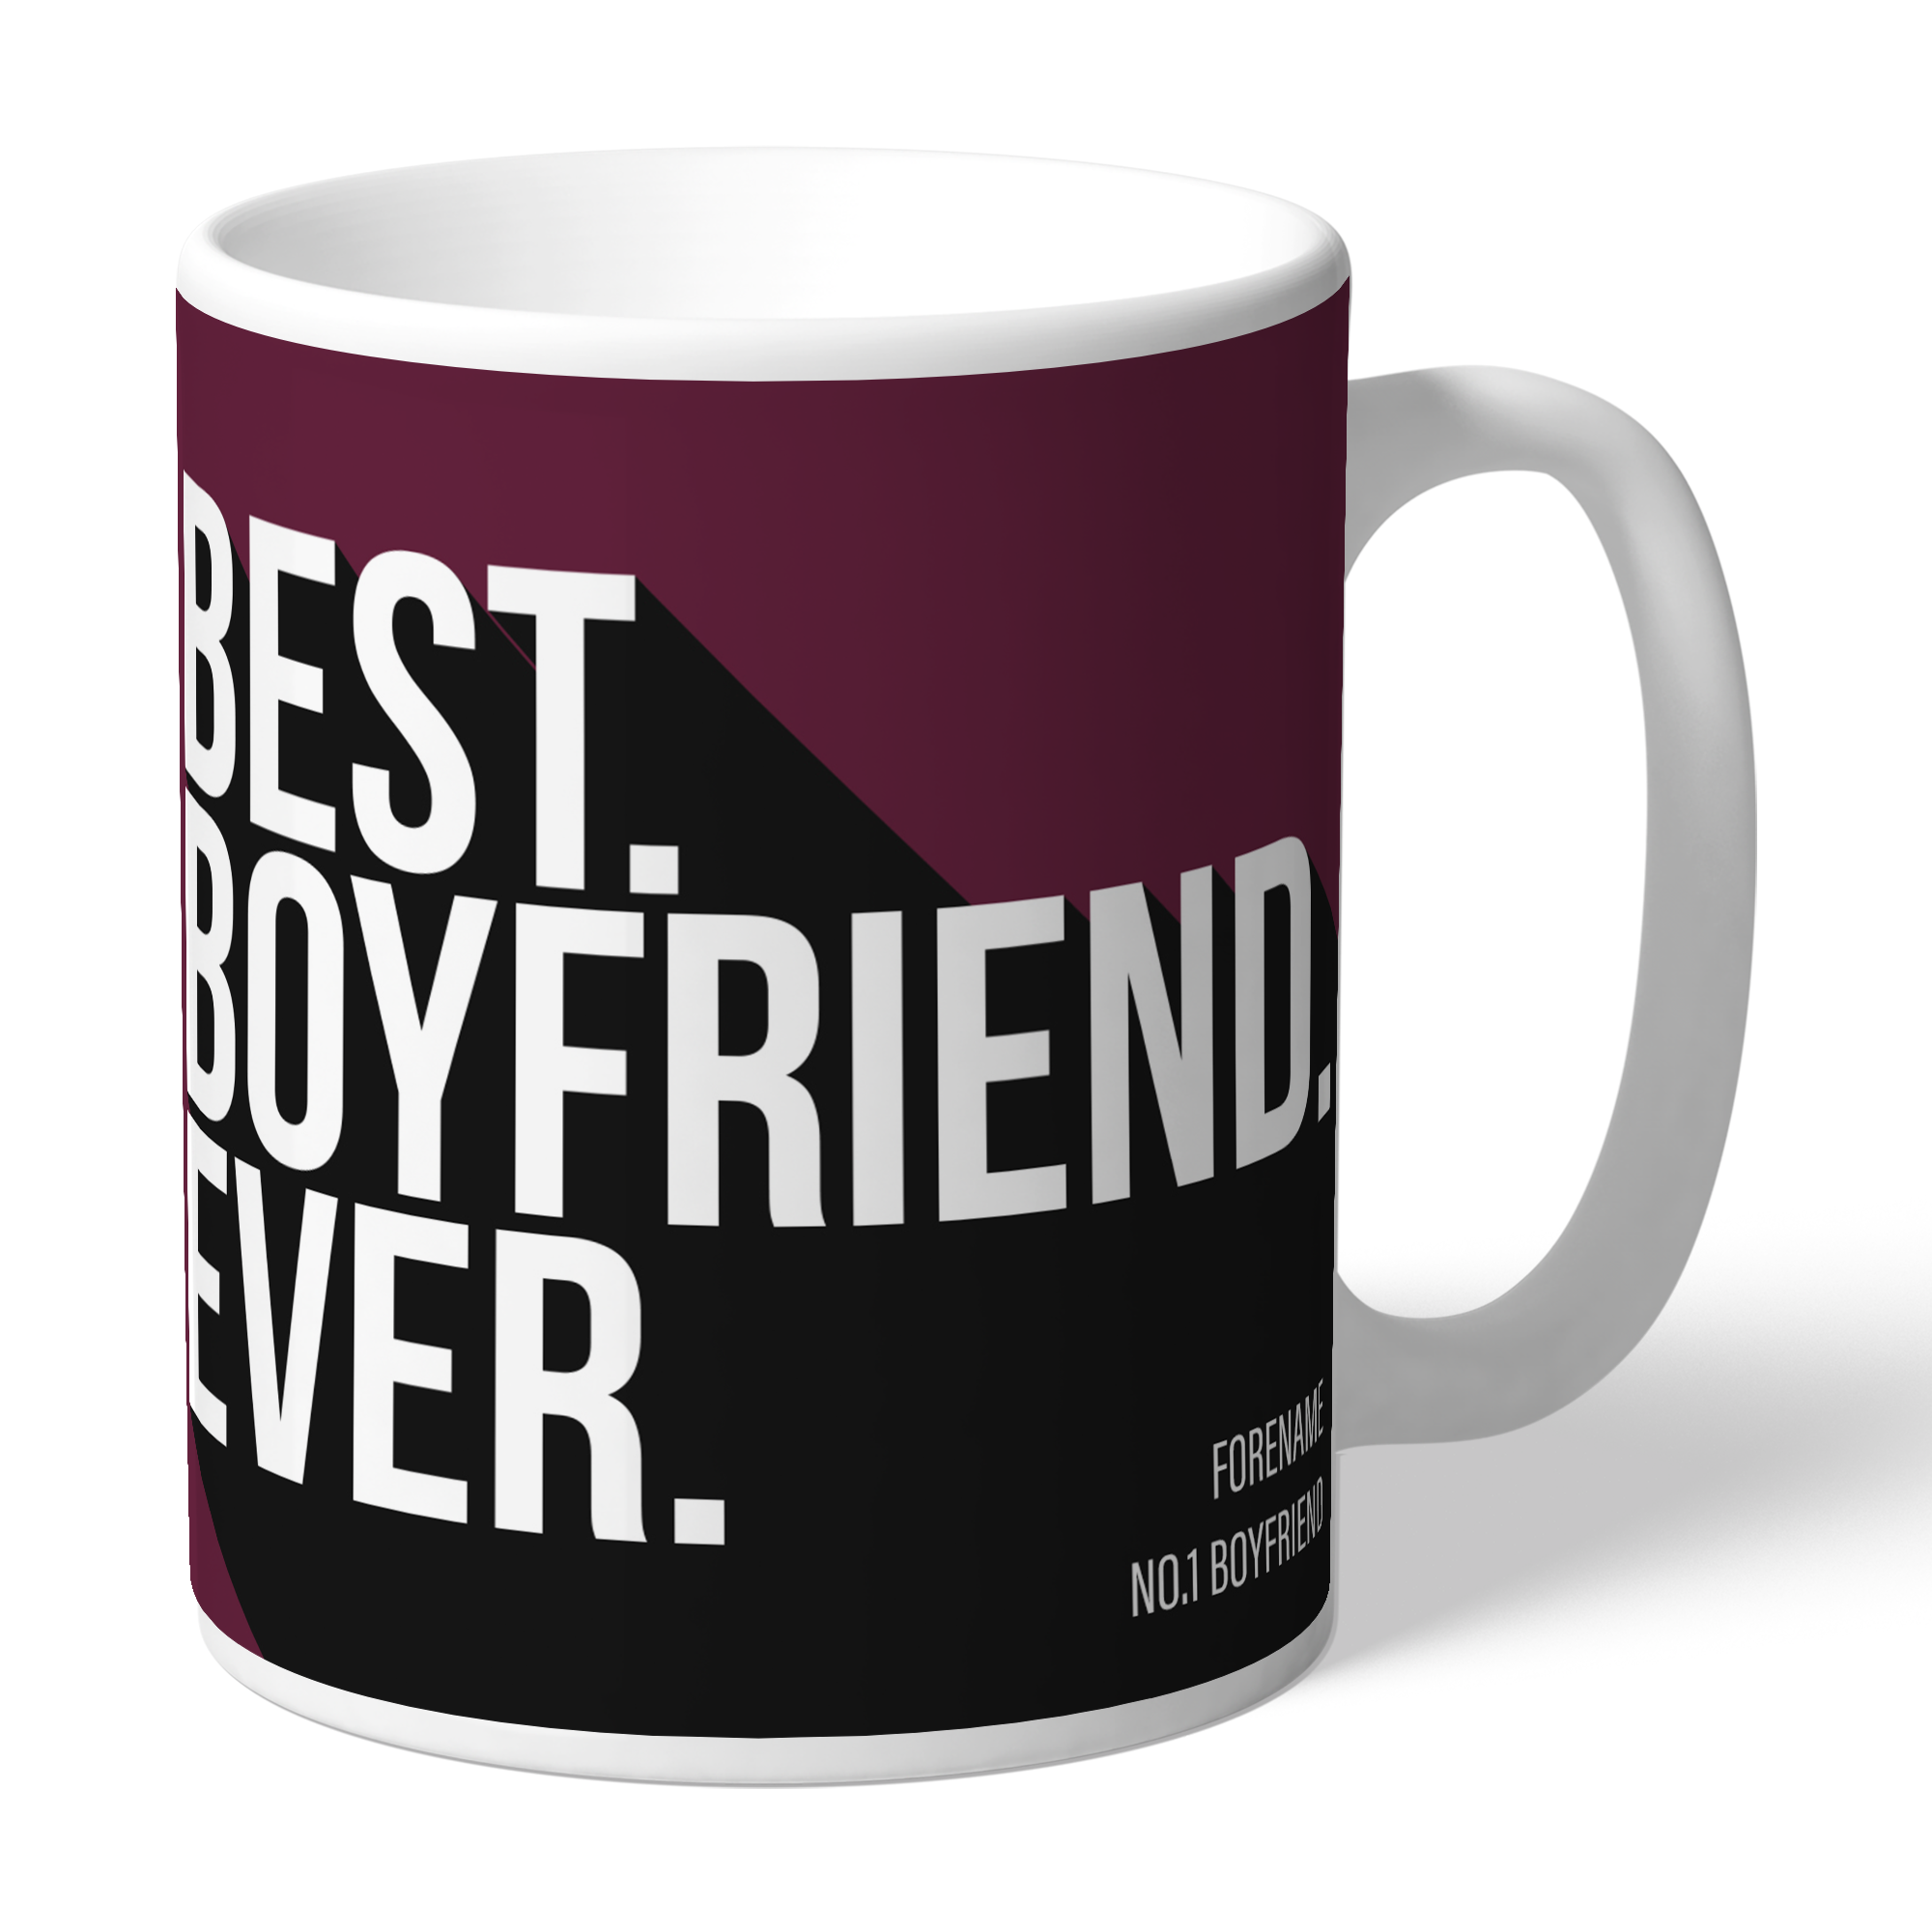 Burnley FC Best Boyfriend Ever Mug